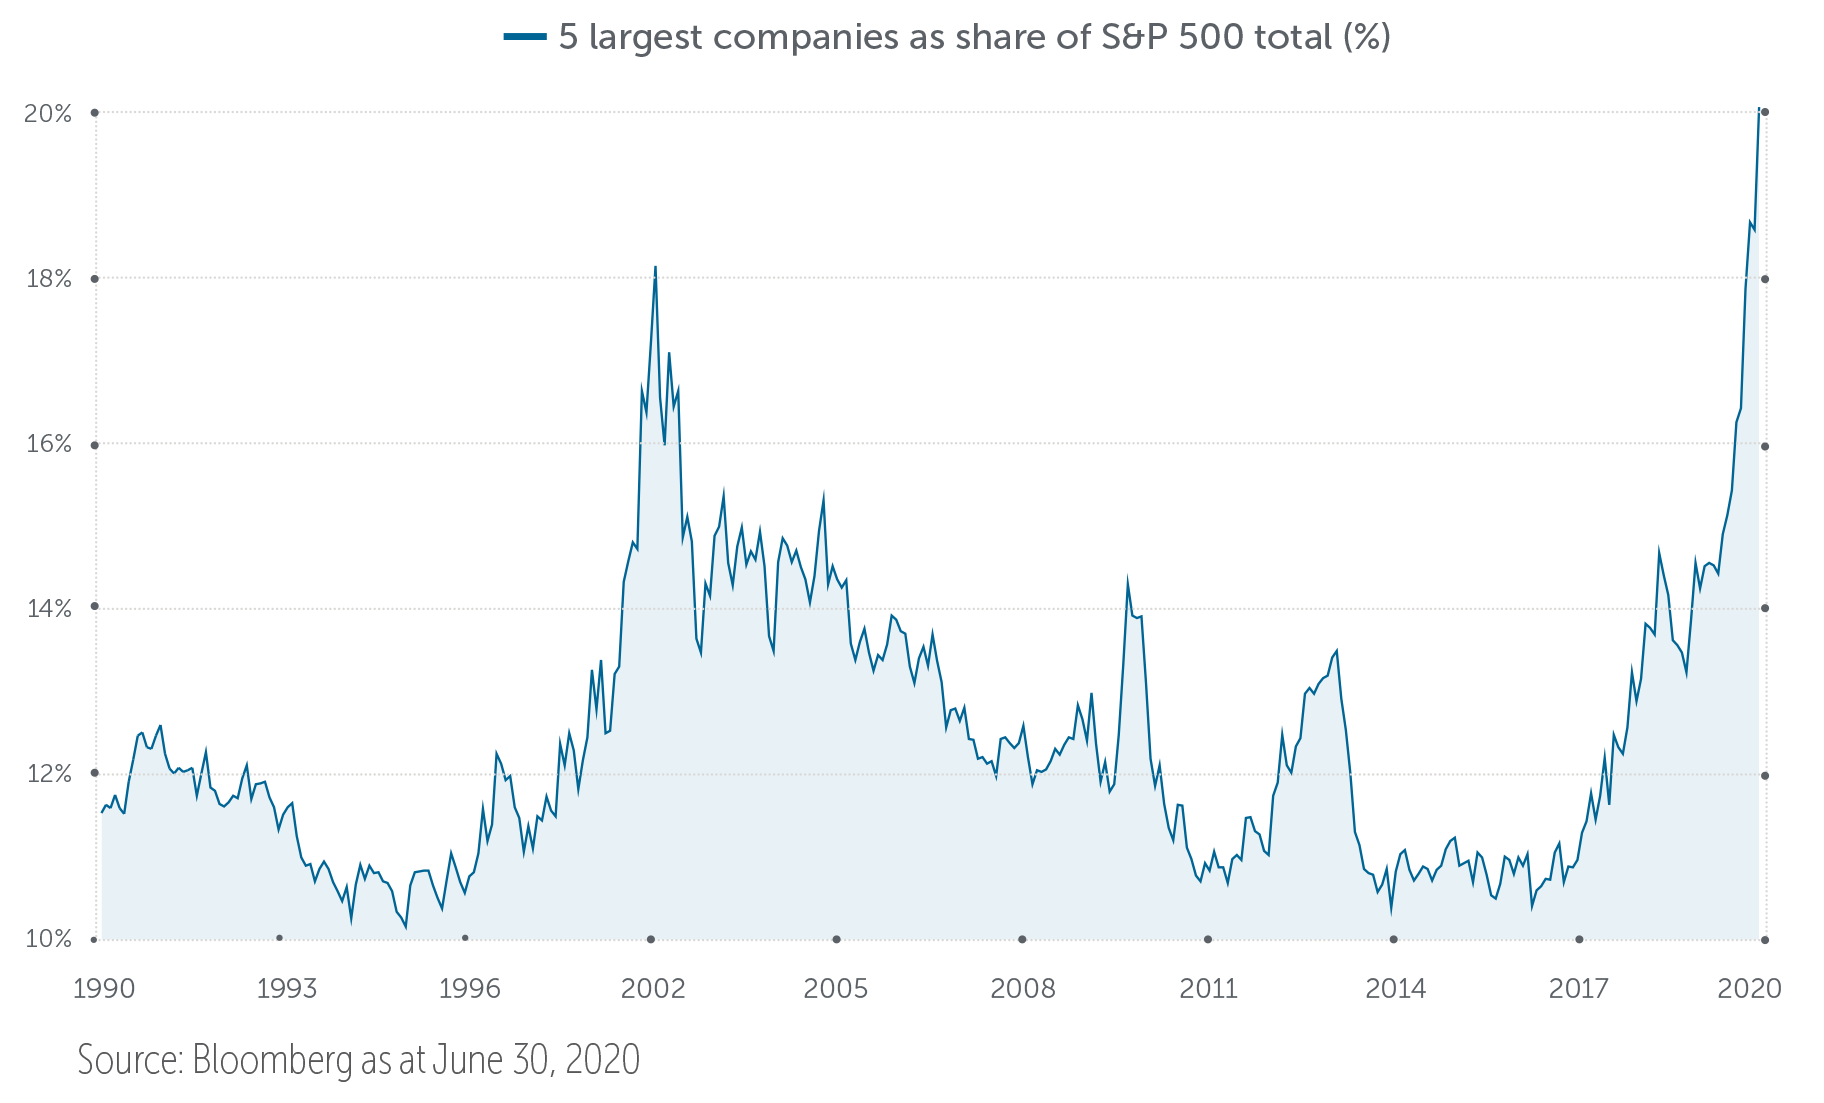 5 largest companies as share of S&P 500 total (%) - 1990-2020, Graph, Source: Bloomberg as at June 30, 2020